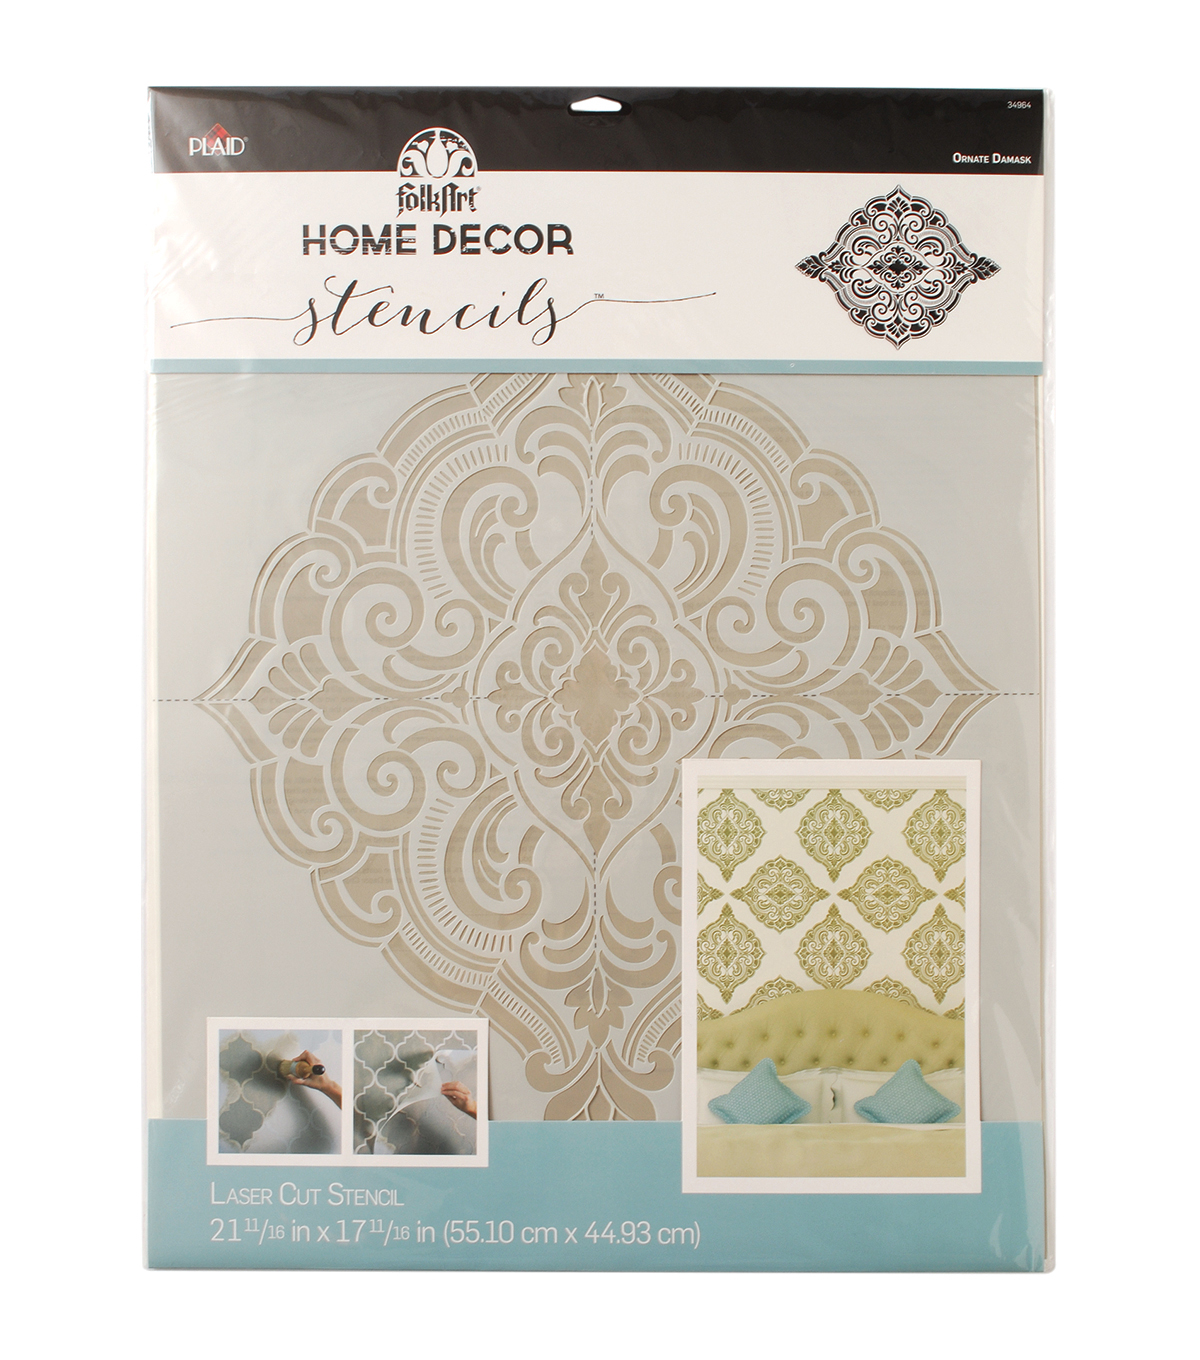 Decorative Wall Stencils folkart home decor wall stencil-ornate damask - joann | joann